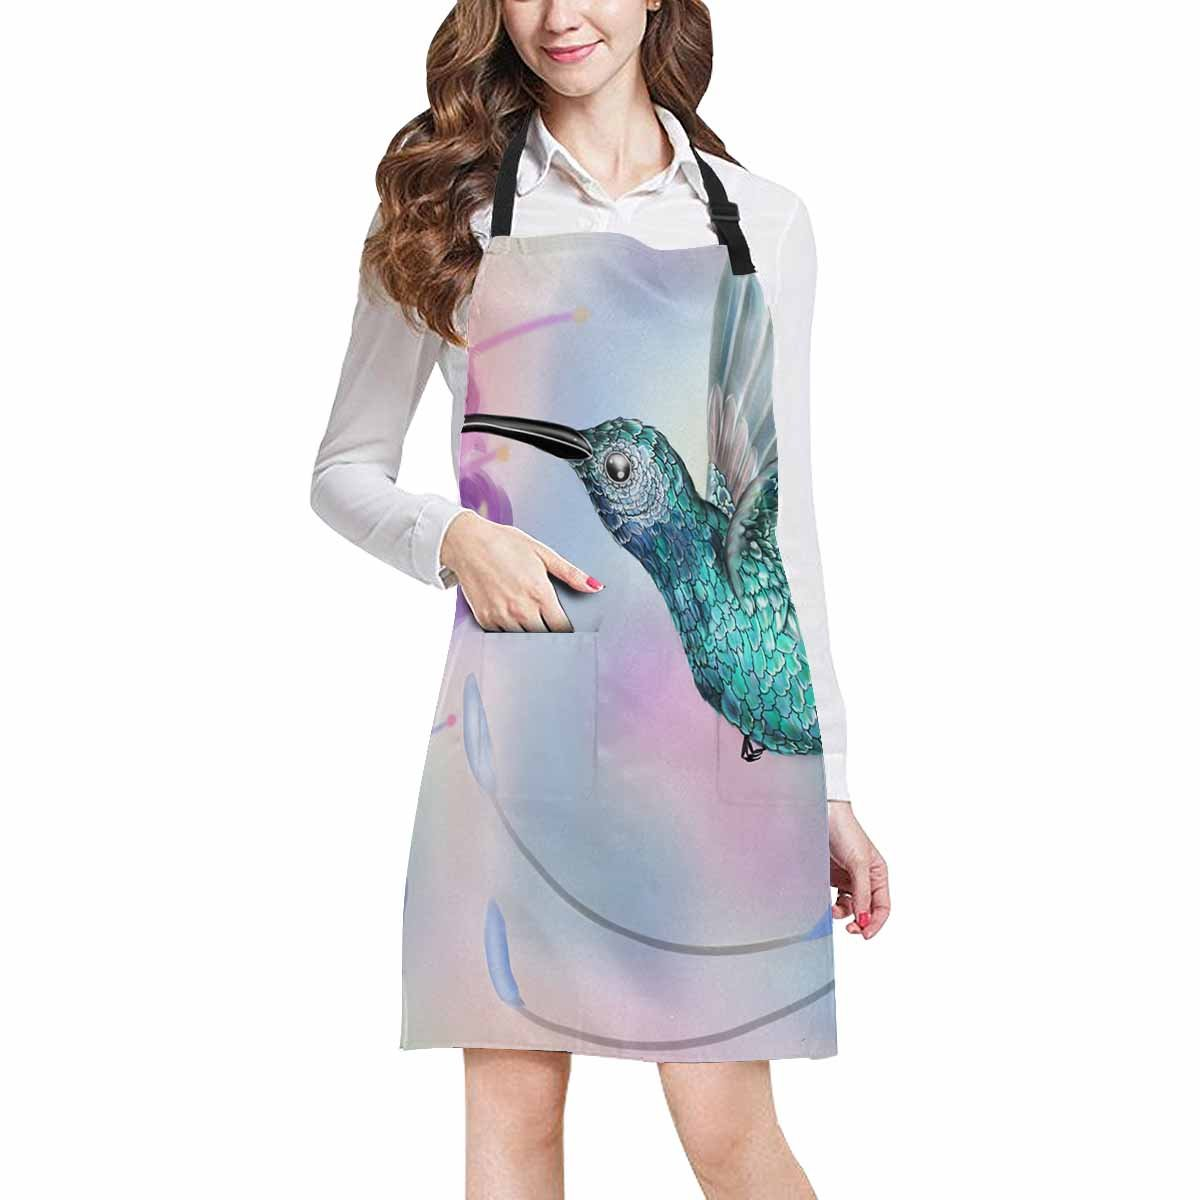 InterestPrint Hummingbird and Flower Funny Animal Art Chef Kitchen Apron, Adjustable Strap & Waist Ties, Front Pockets, Perfect for Cooking, Baking, Barbequing, Large Size